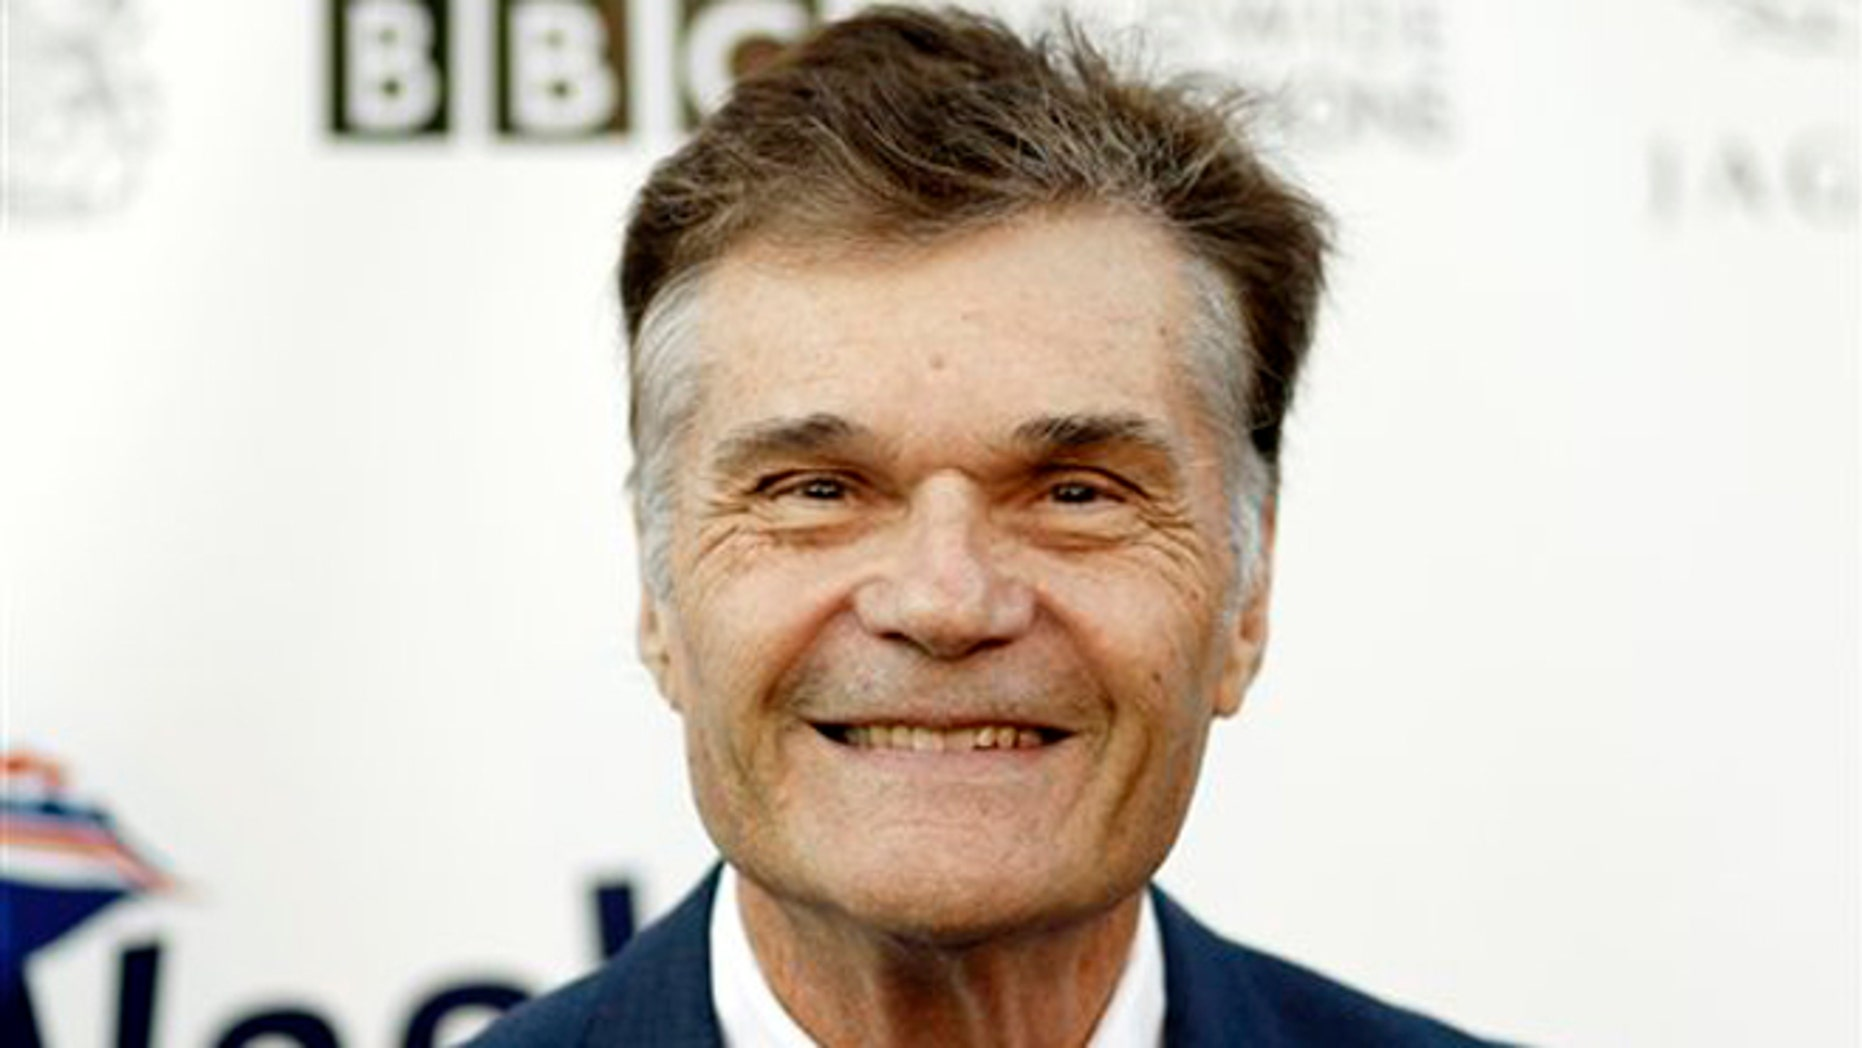 April 26, 2011: This file photo shows actor Fred Willard arriving at the fifth annual BritWeek in Los Angeles.